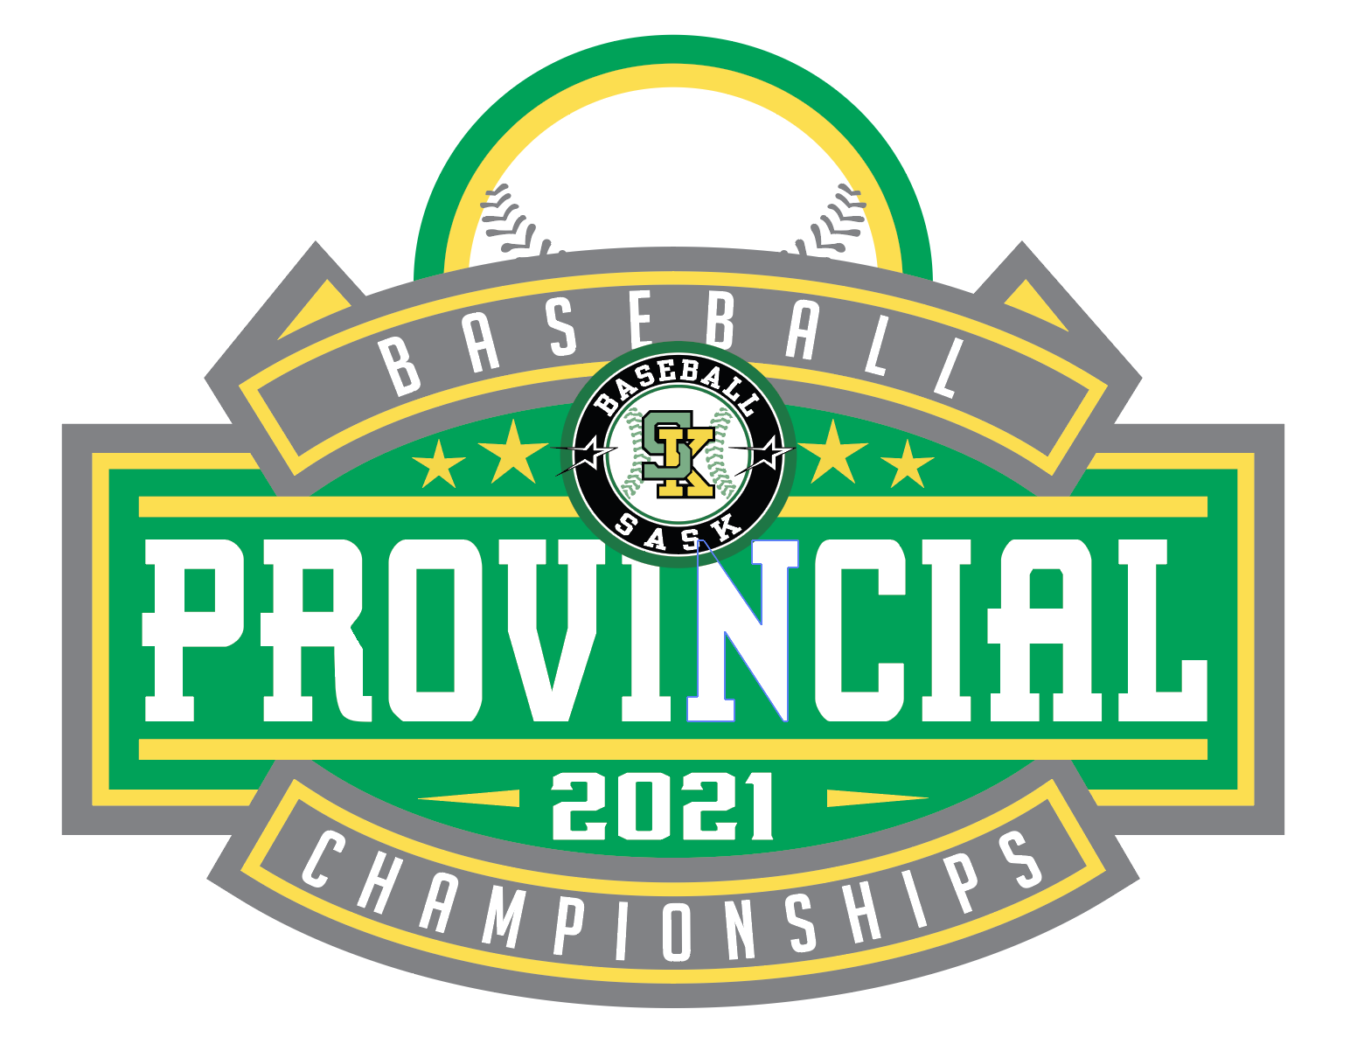 2021 Provincial Championship Update